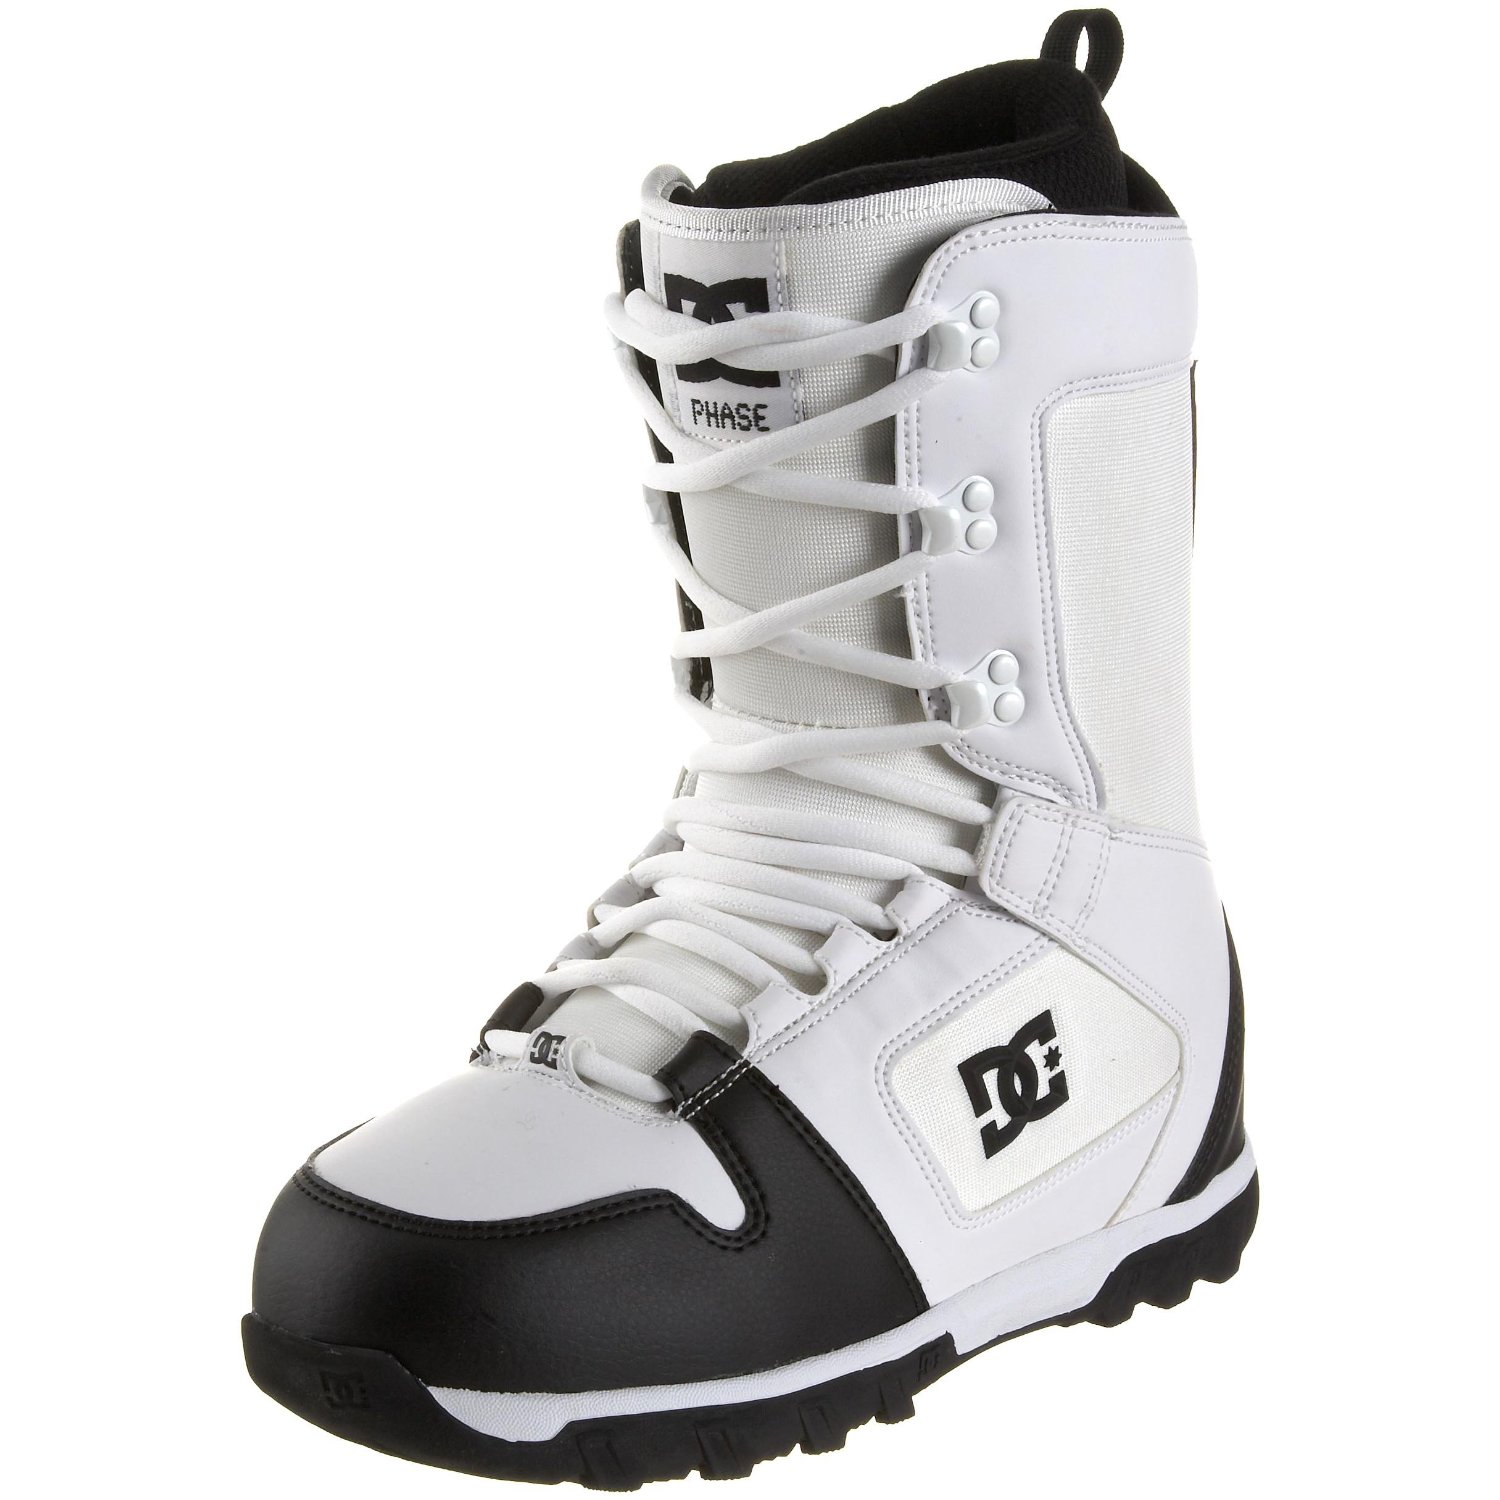 DC Men's Phase 2011 Snowboard Boots Review